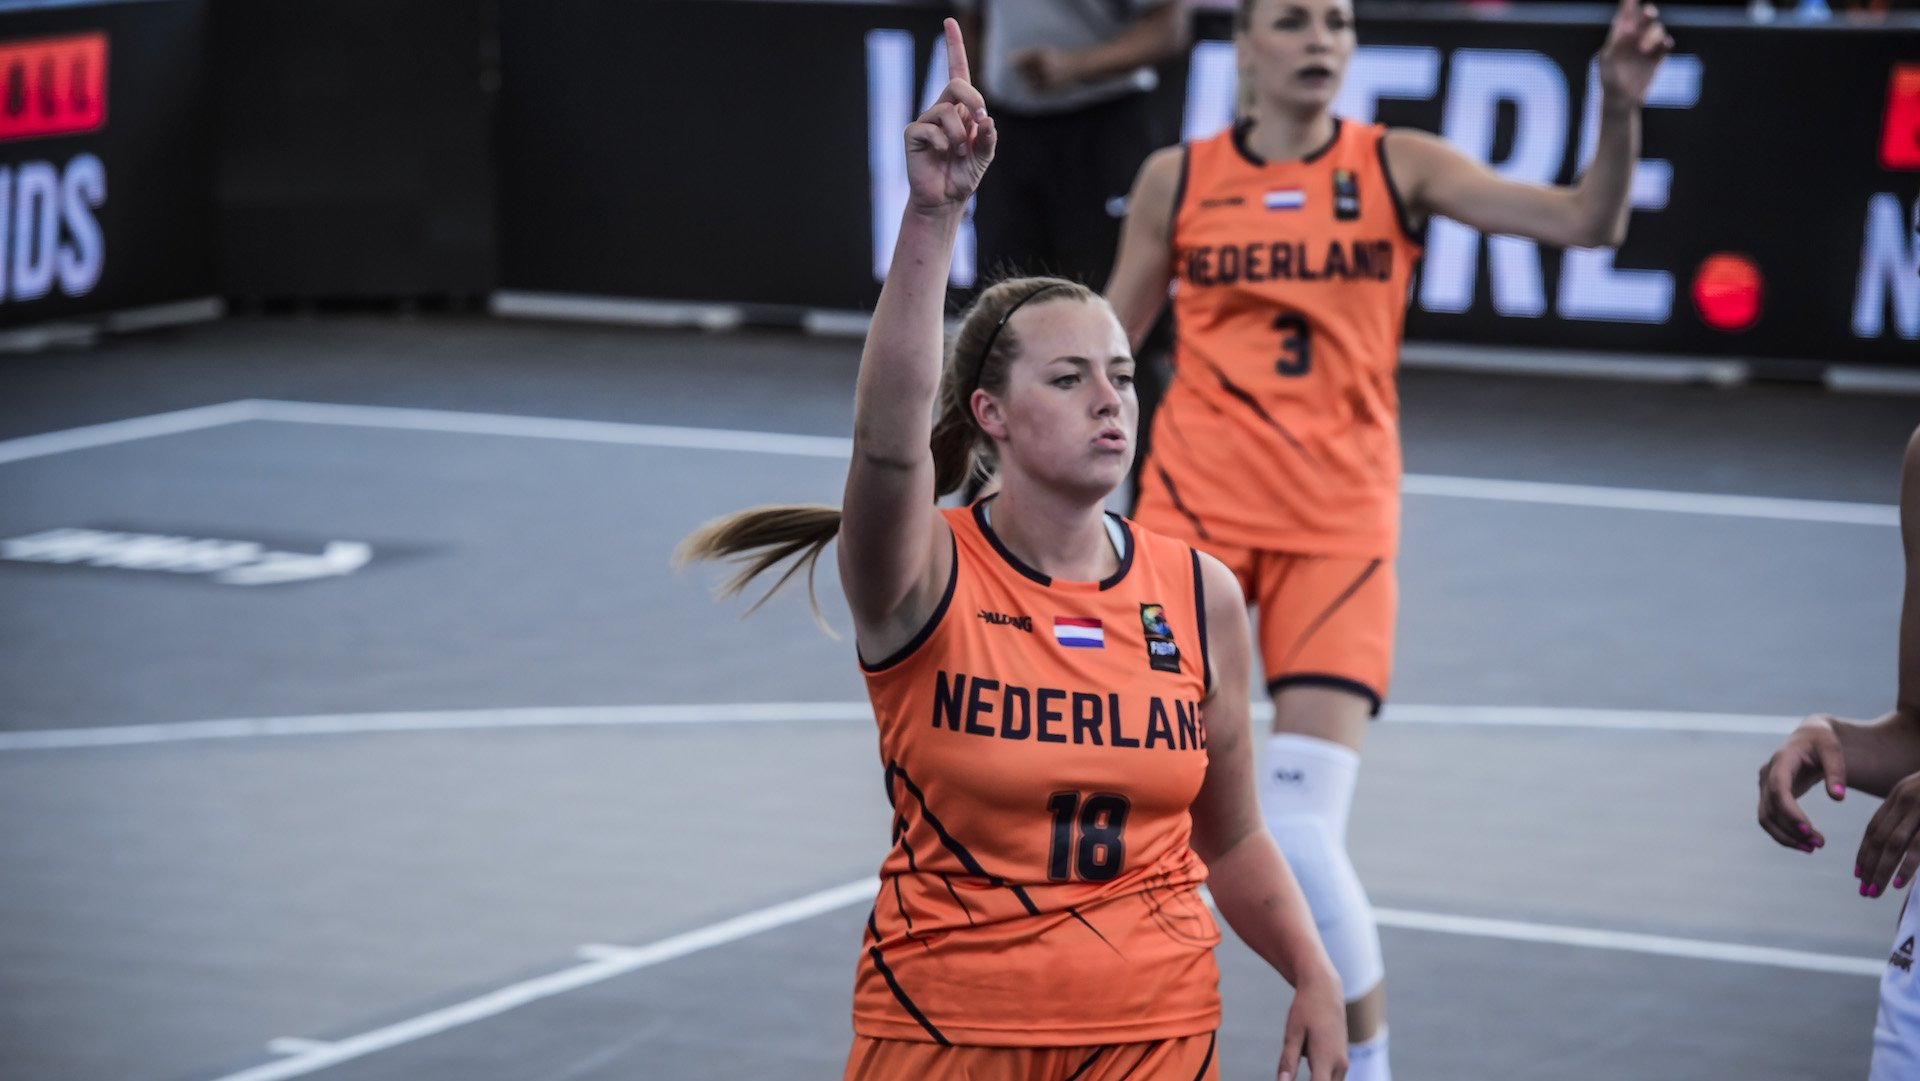 3X3WC2019_day03_Vaclav Mudra_148.jpg